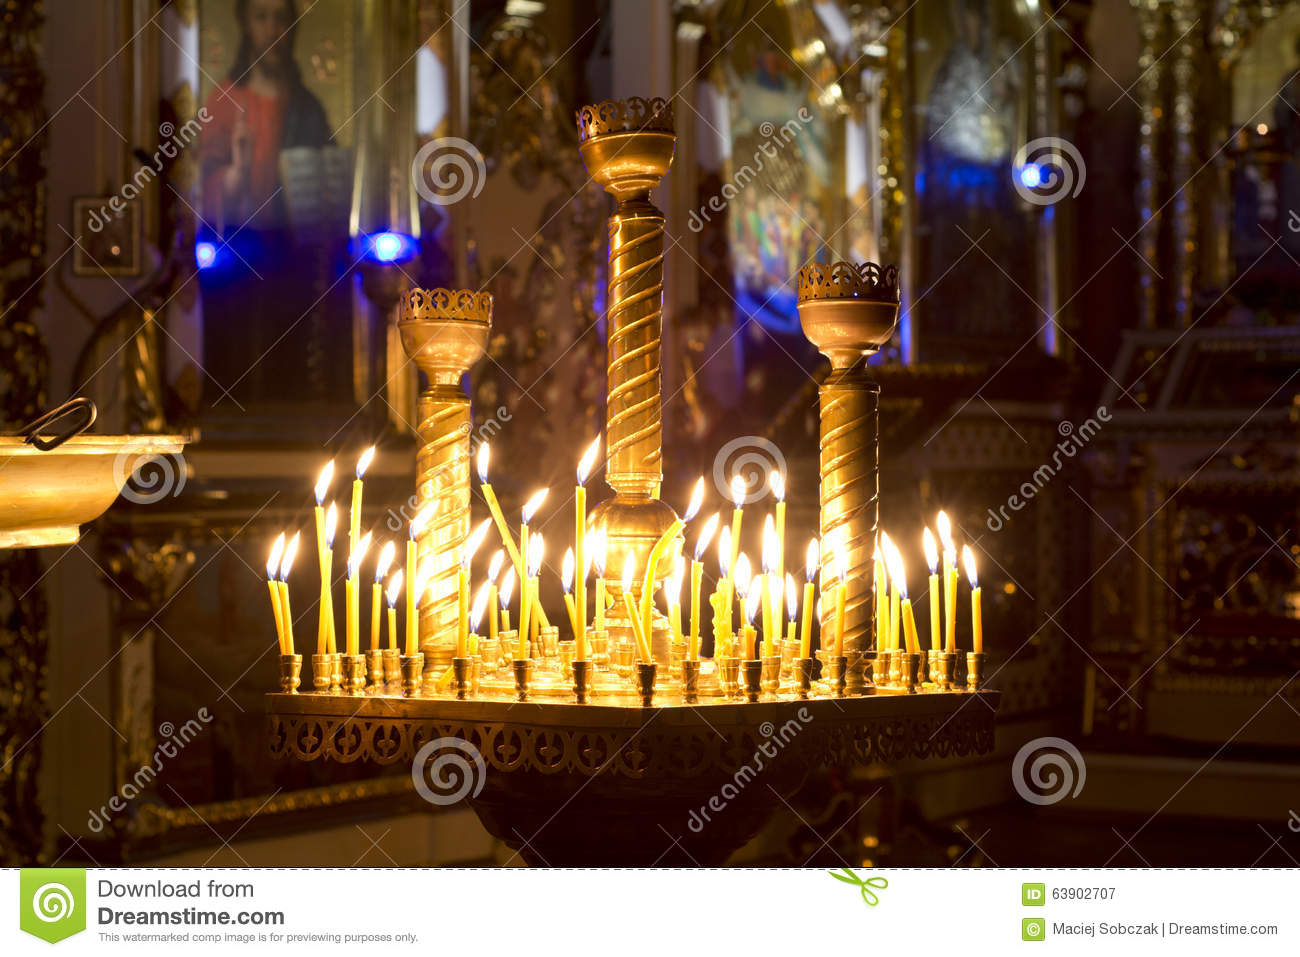 Prayer Candles in orthodoxy church